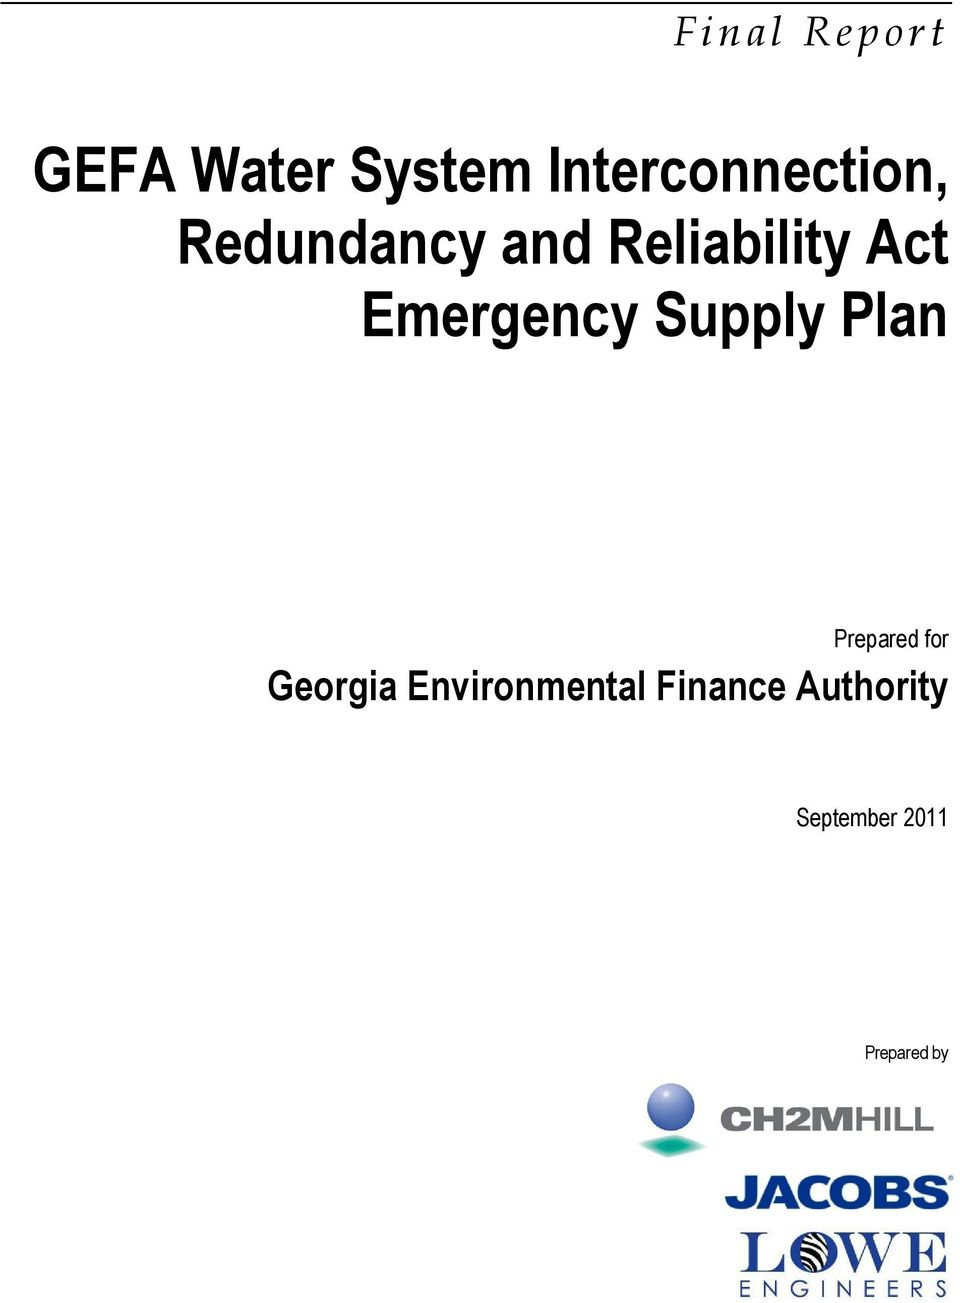 GEFA Water System Interconnection, Redundancy and